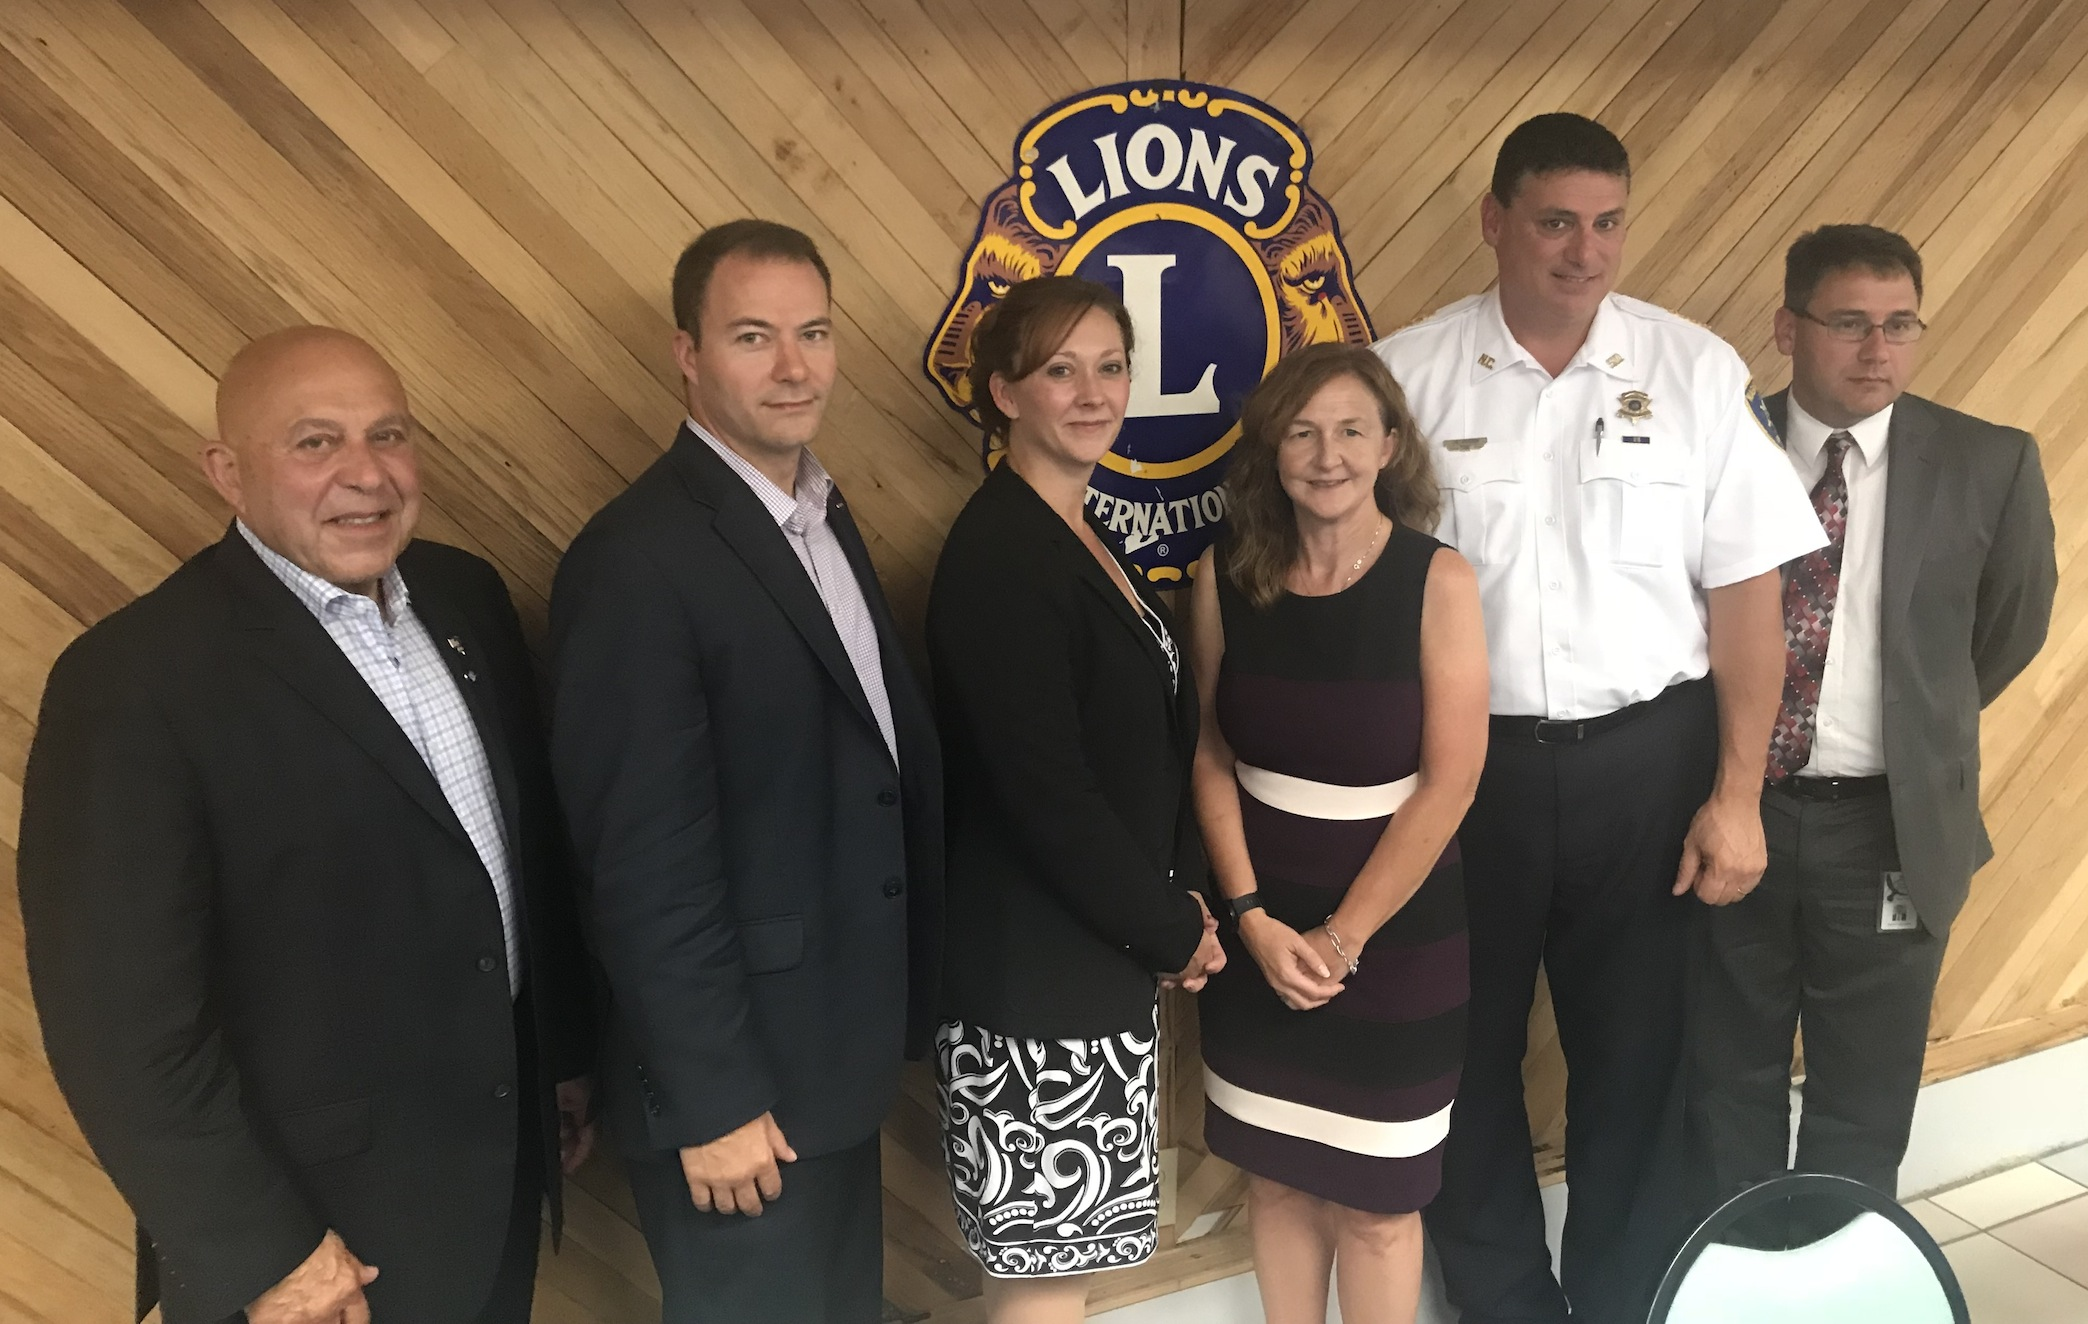 New York Sen. Rob Ortt joins community leaders Sen. Chris Jacobs (not pictured), Assemblyman Angelo J. Morinello, Niagara County Legislator Rebecca Wydysh, Niagara County Mental Health Services Director Laura Kelemen, Niagara County Sheriff James Voutour and Niagara Wheatfield Superintendent Daniel Ljiljanich for an opioid forum at the Wheatfield Lions Club Five Senses Nature Park.